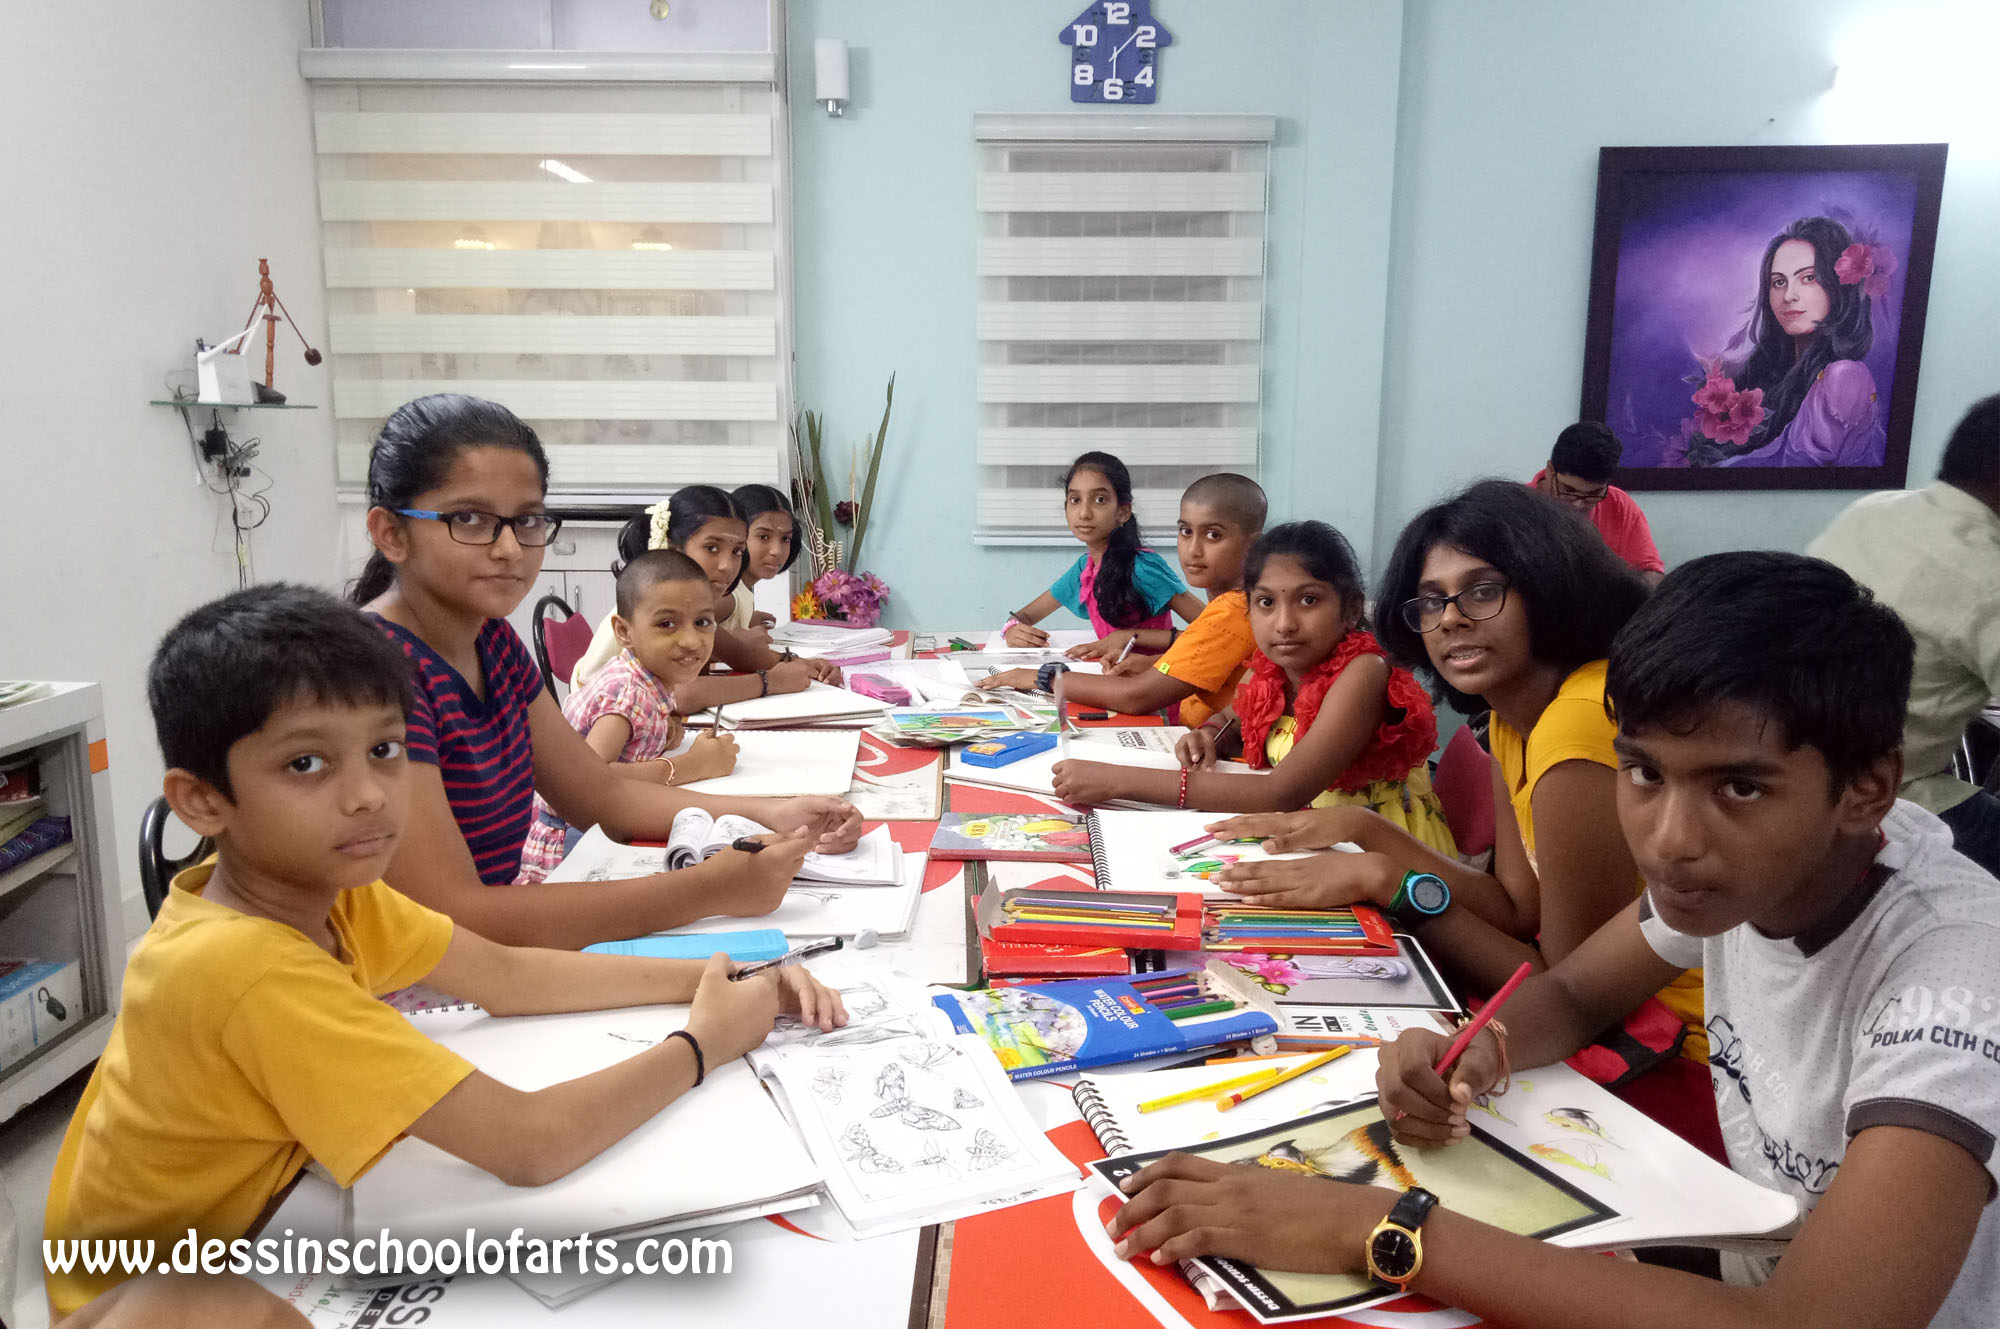 Dessin School of Arts, Dessin School of Arts, sketching classes For Kids in Anna Nagar East L Block Class Room Photo 2